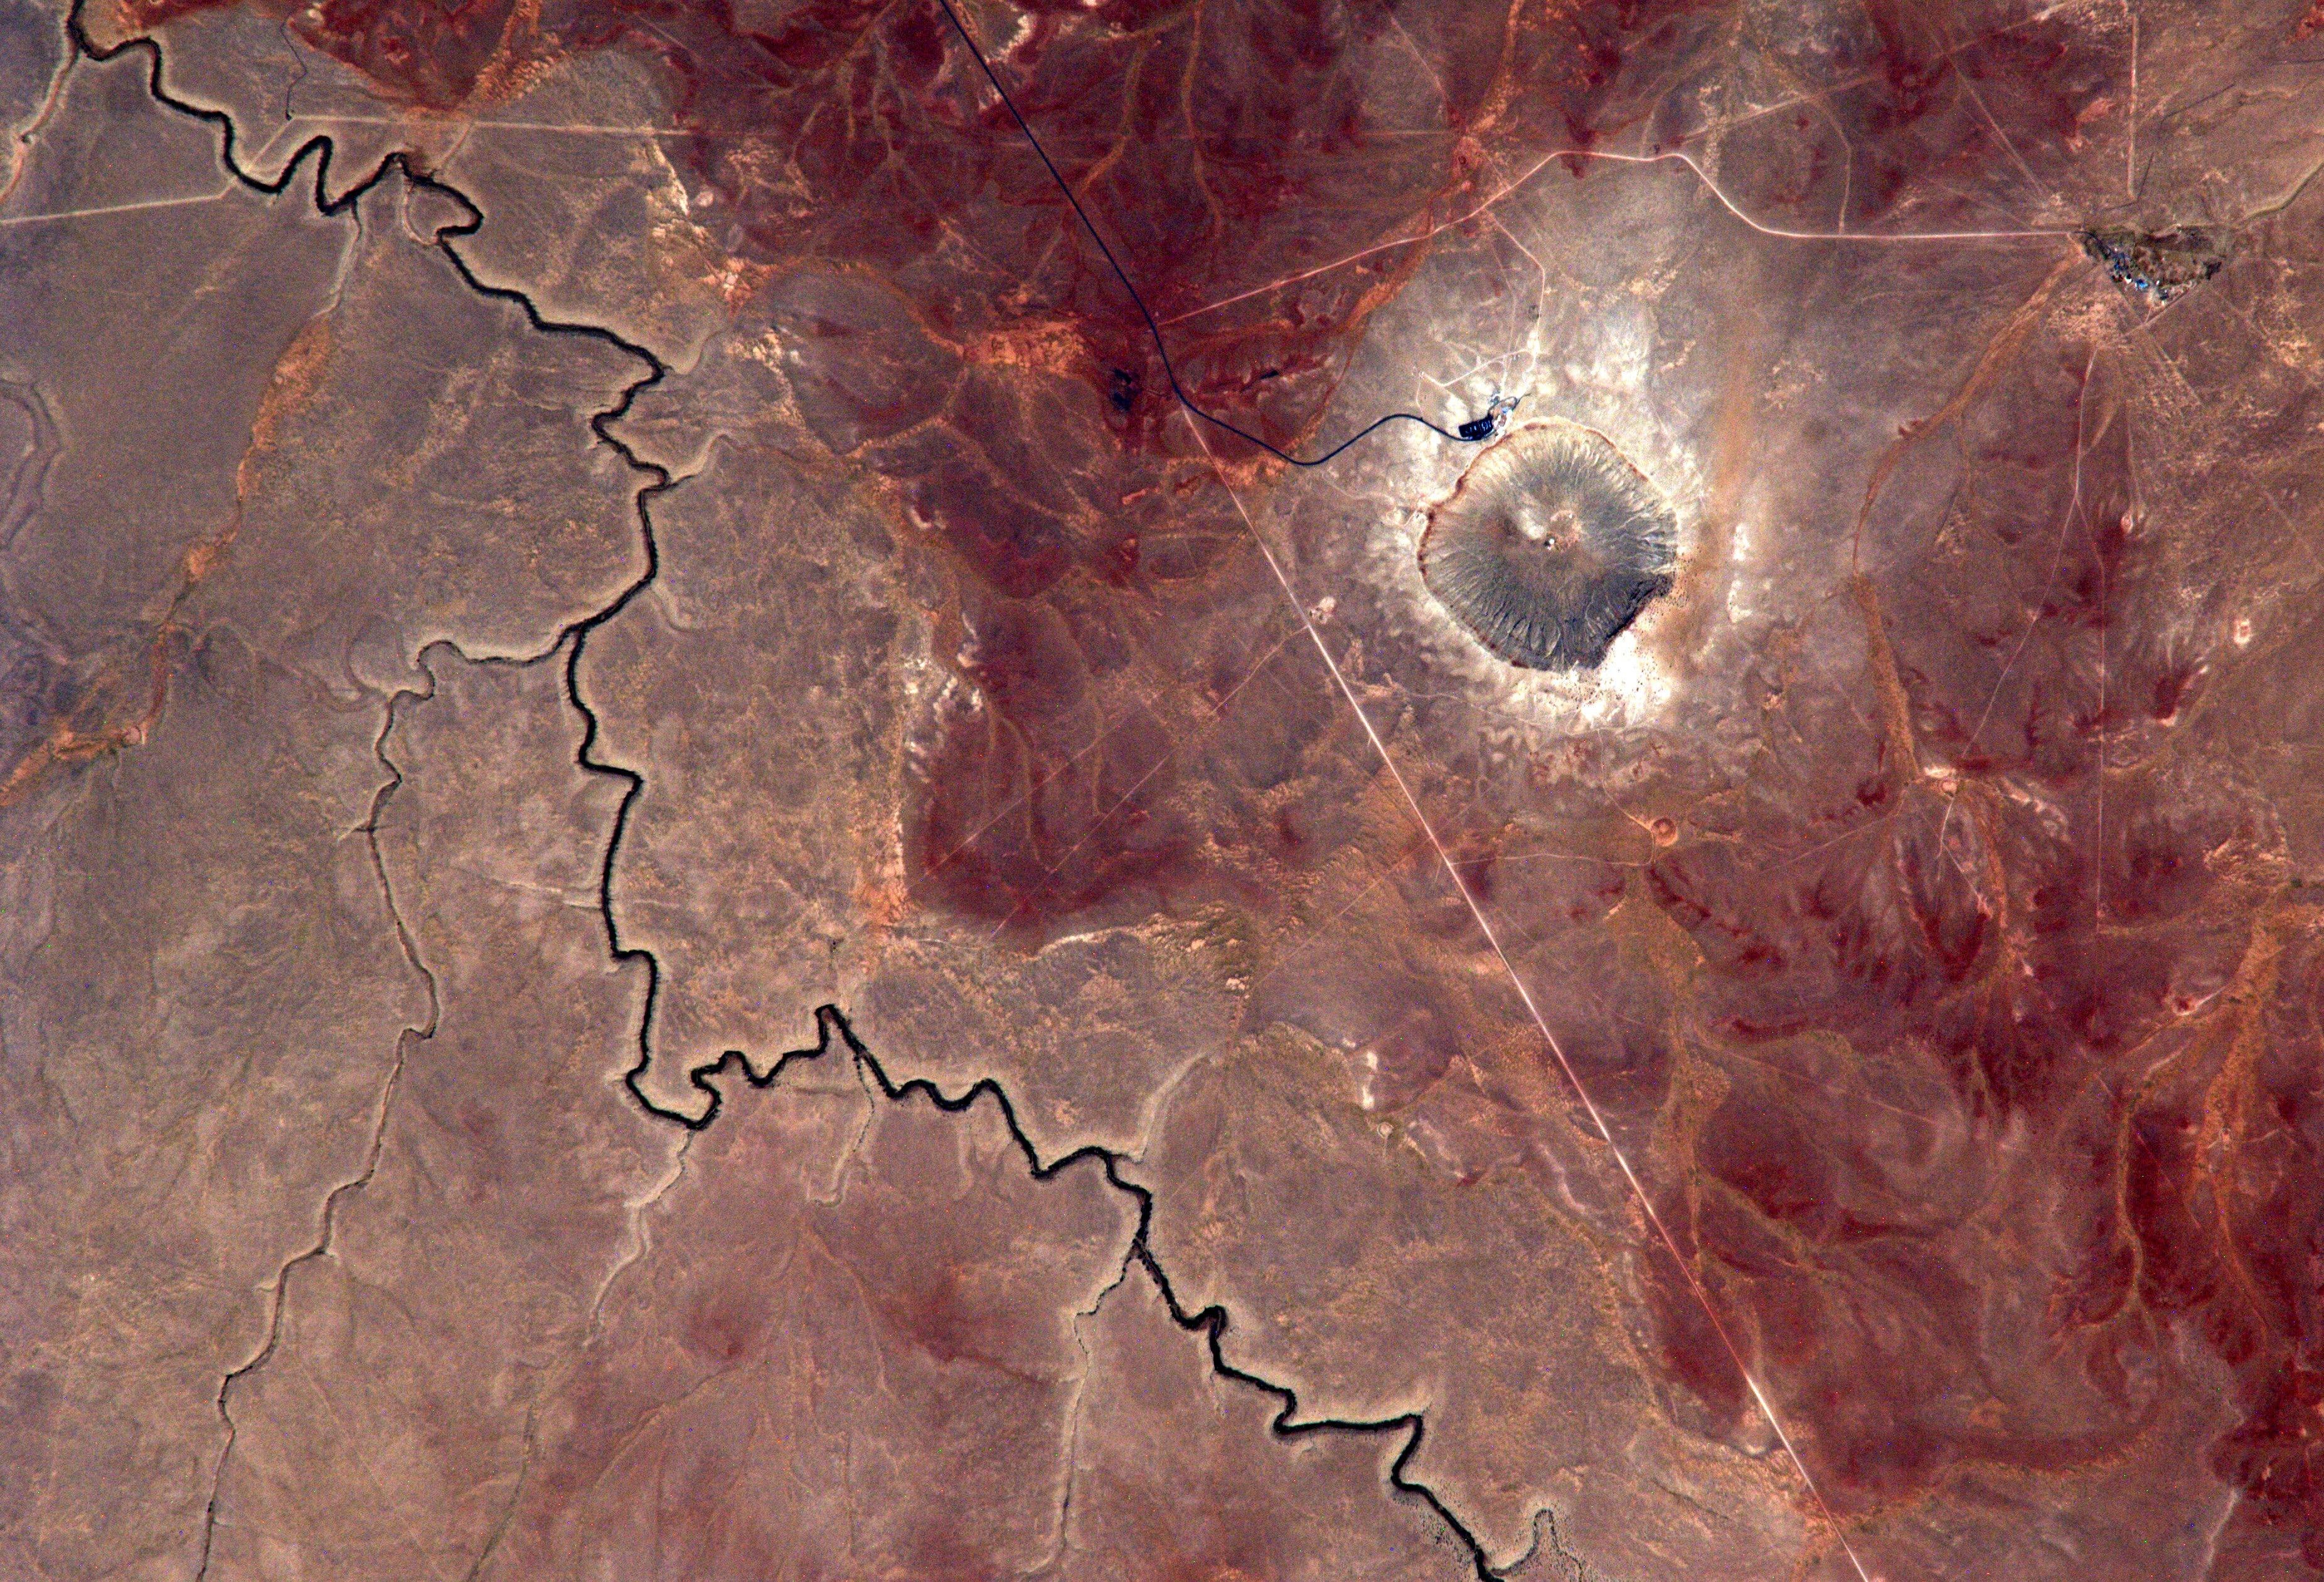 Arizona still bears the 37-mile-wide scar from a 160-foot asteroid.